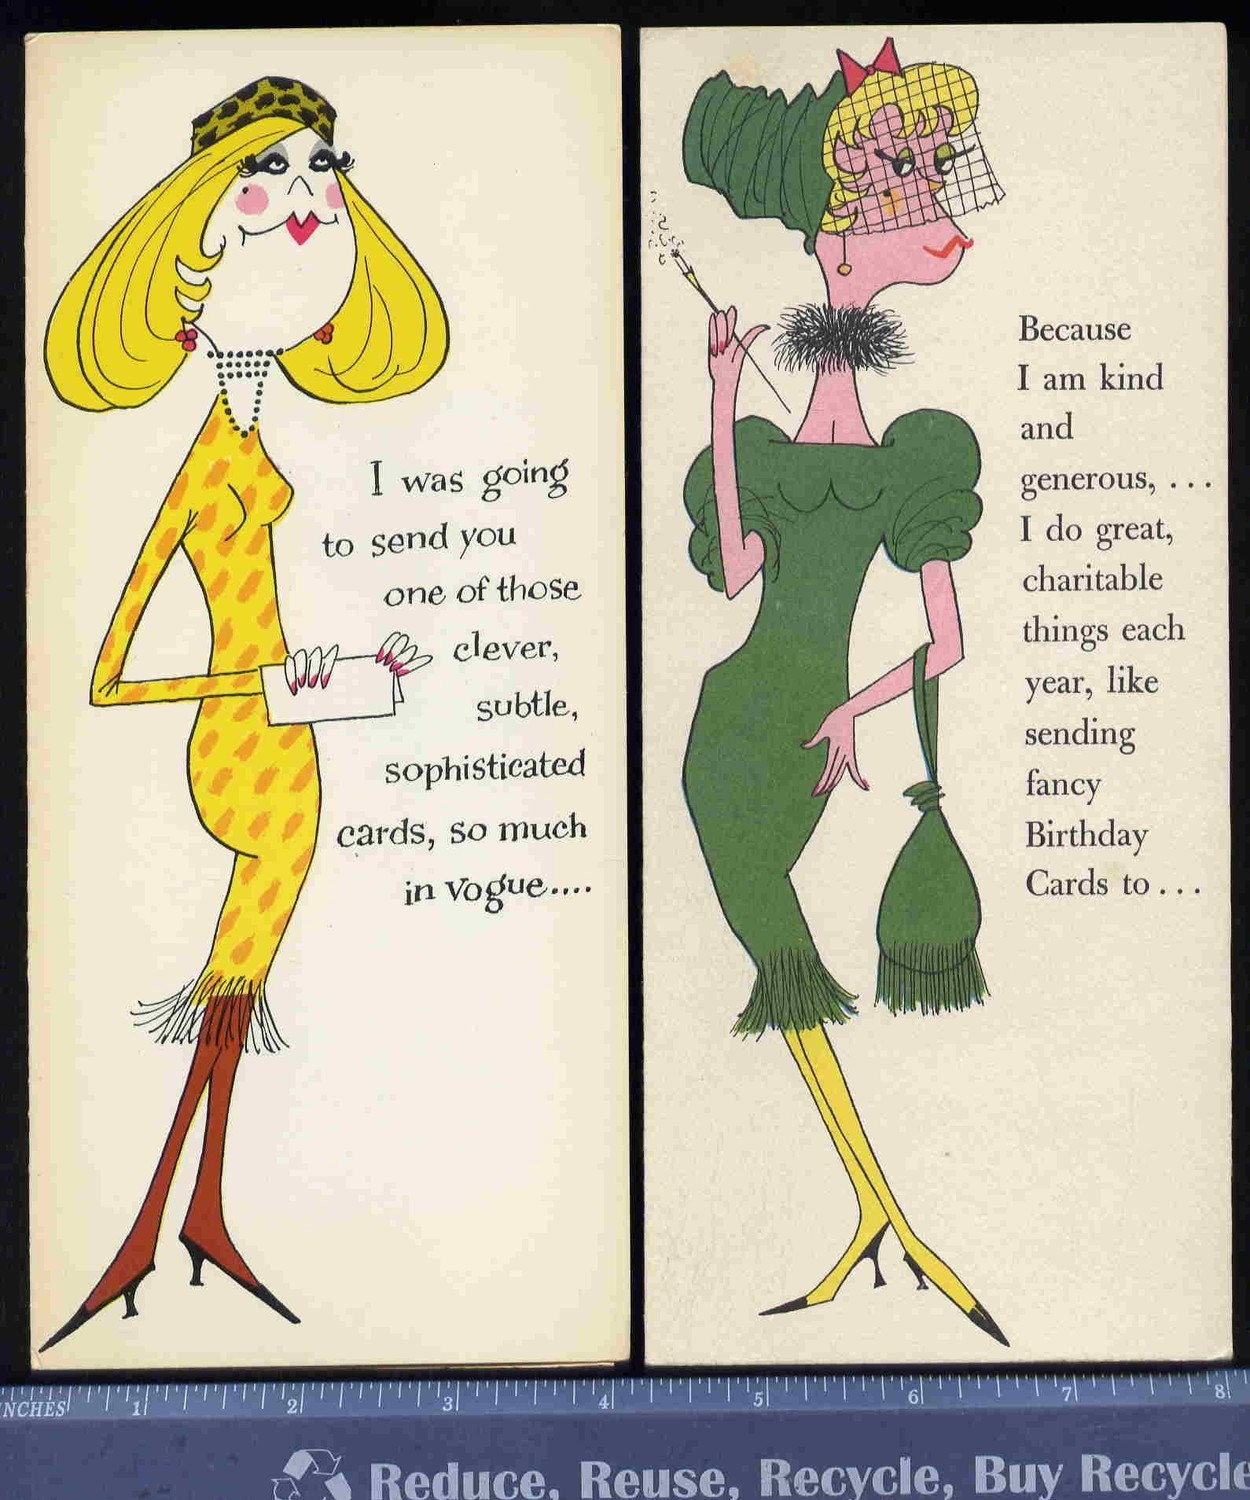 2 Vintage rEtrO VOGUE WOMEN funny gReeTinG by vintagerecycling